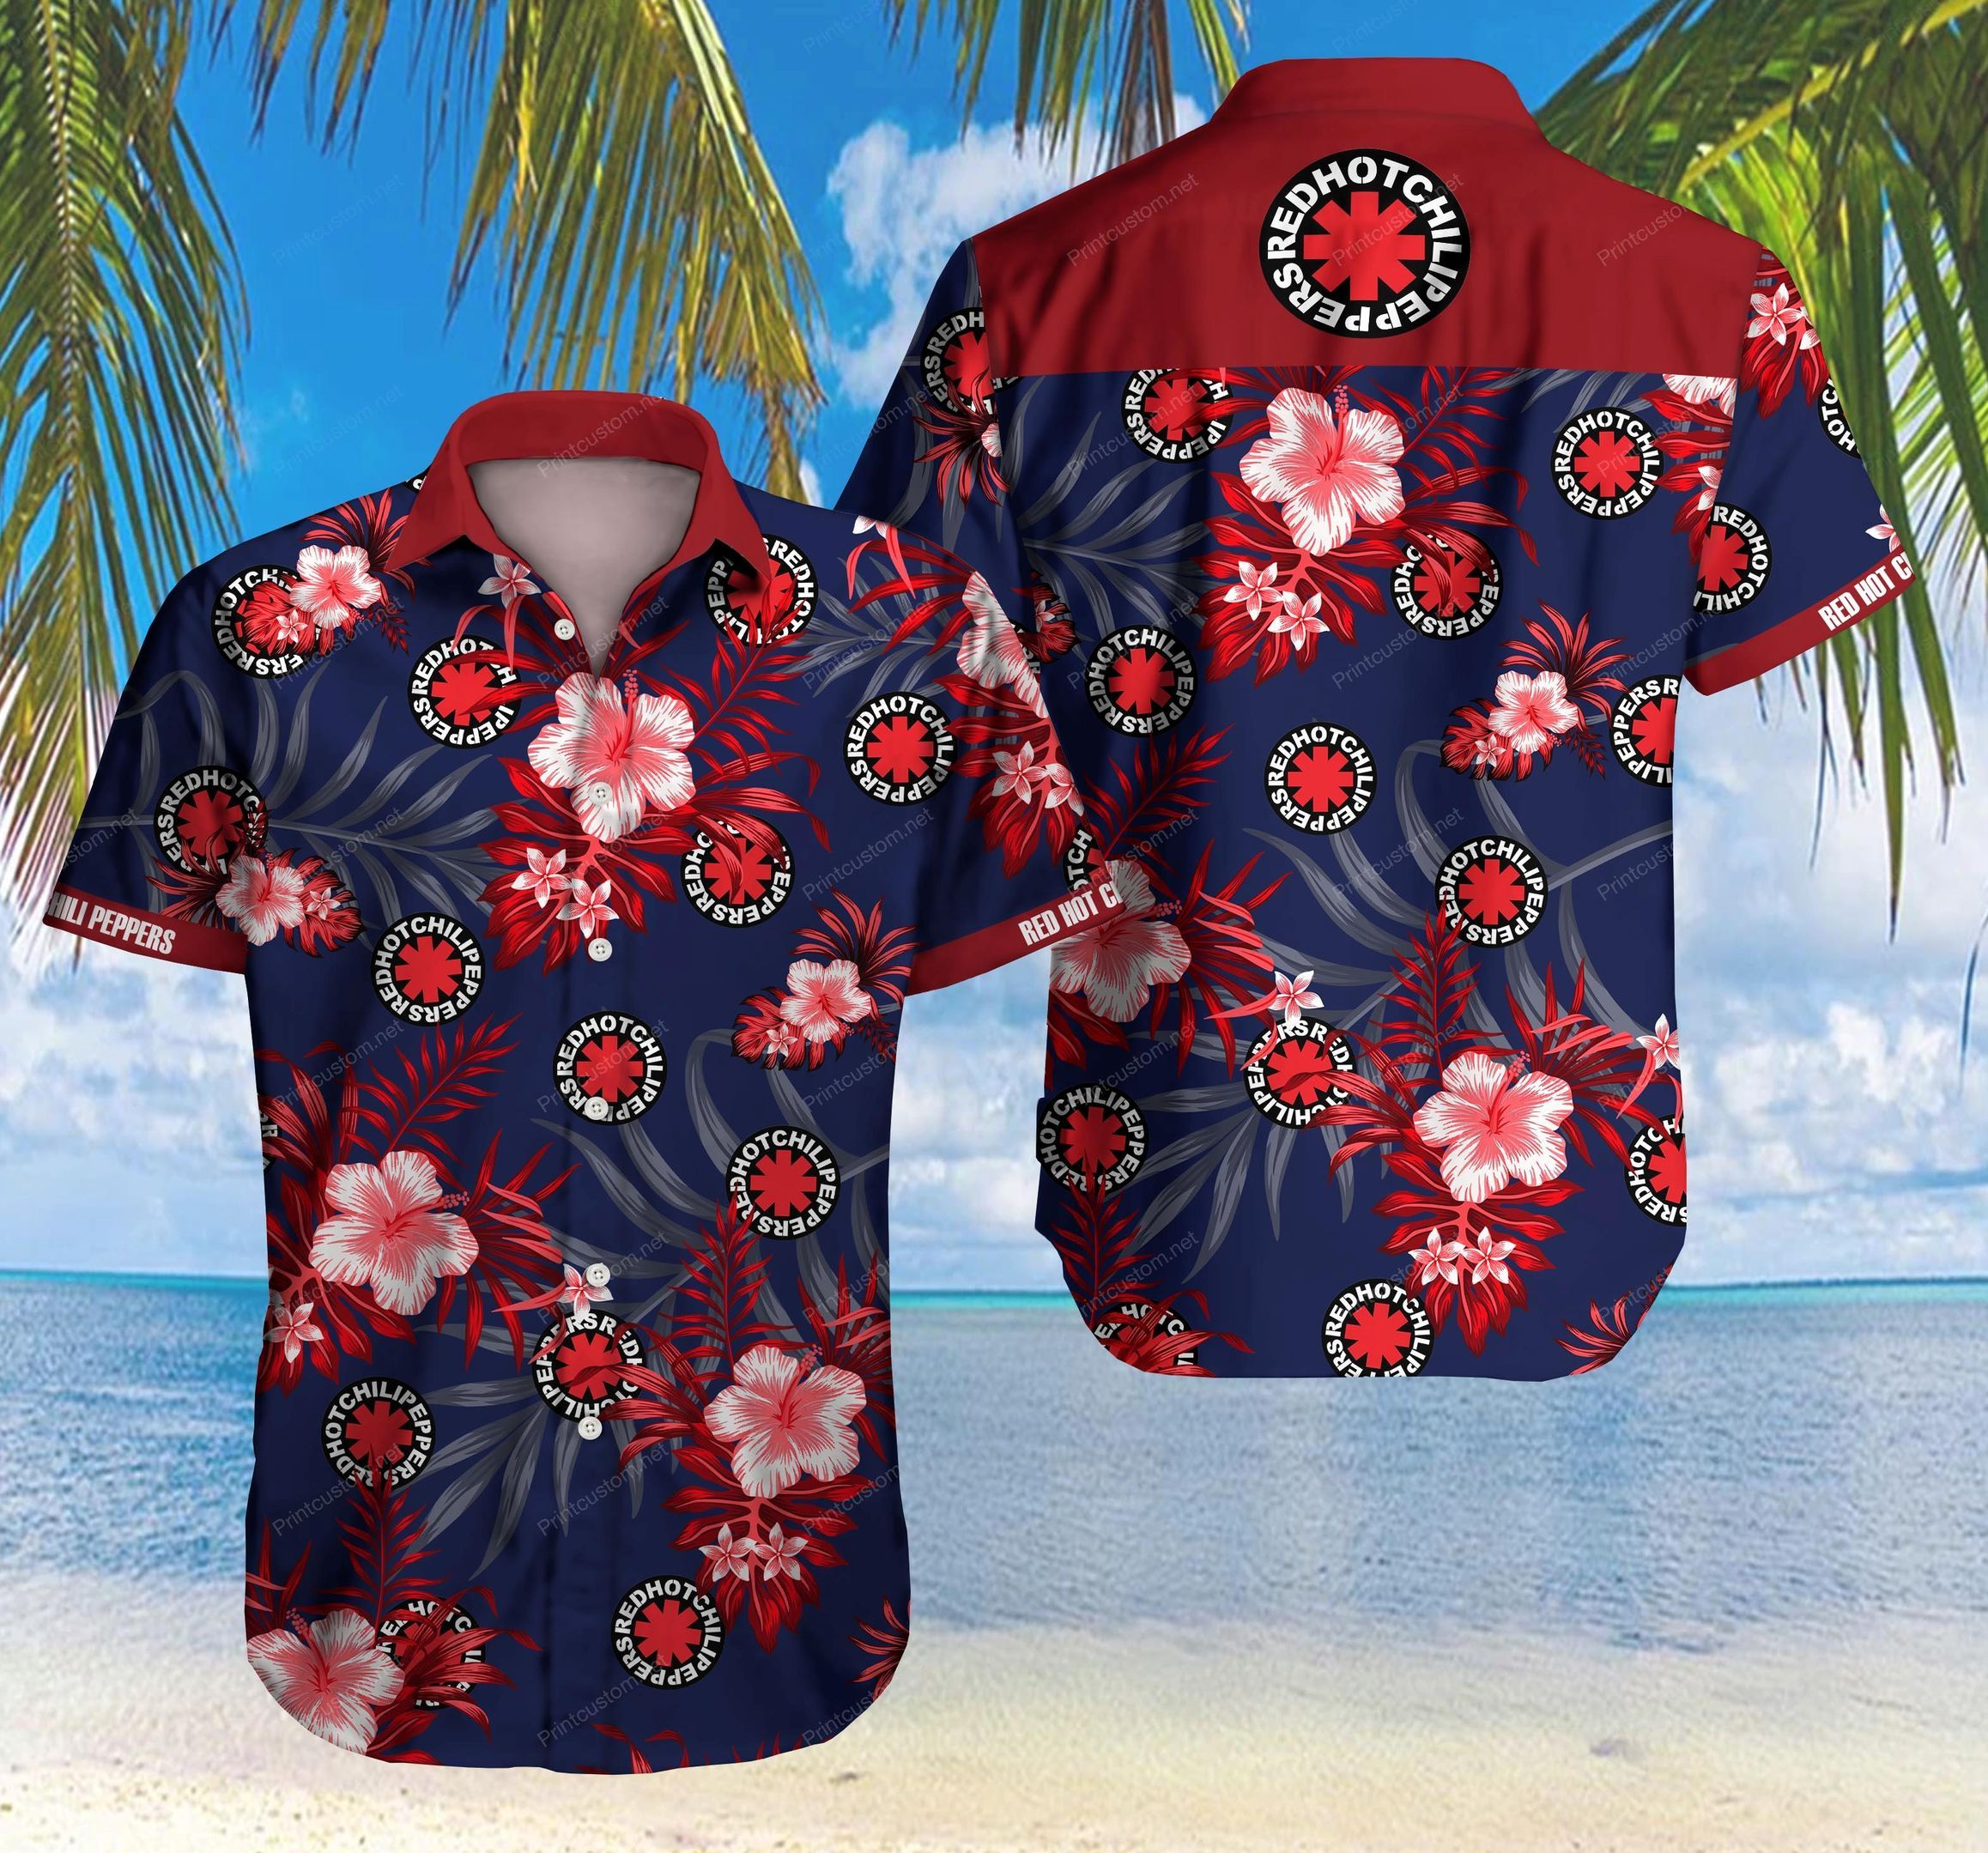 Red Hot Chili Peppers Hawaii Shirt